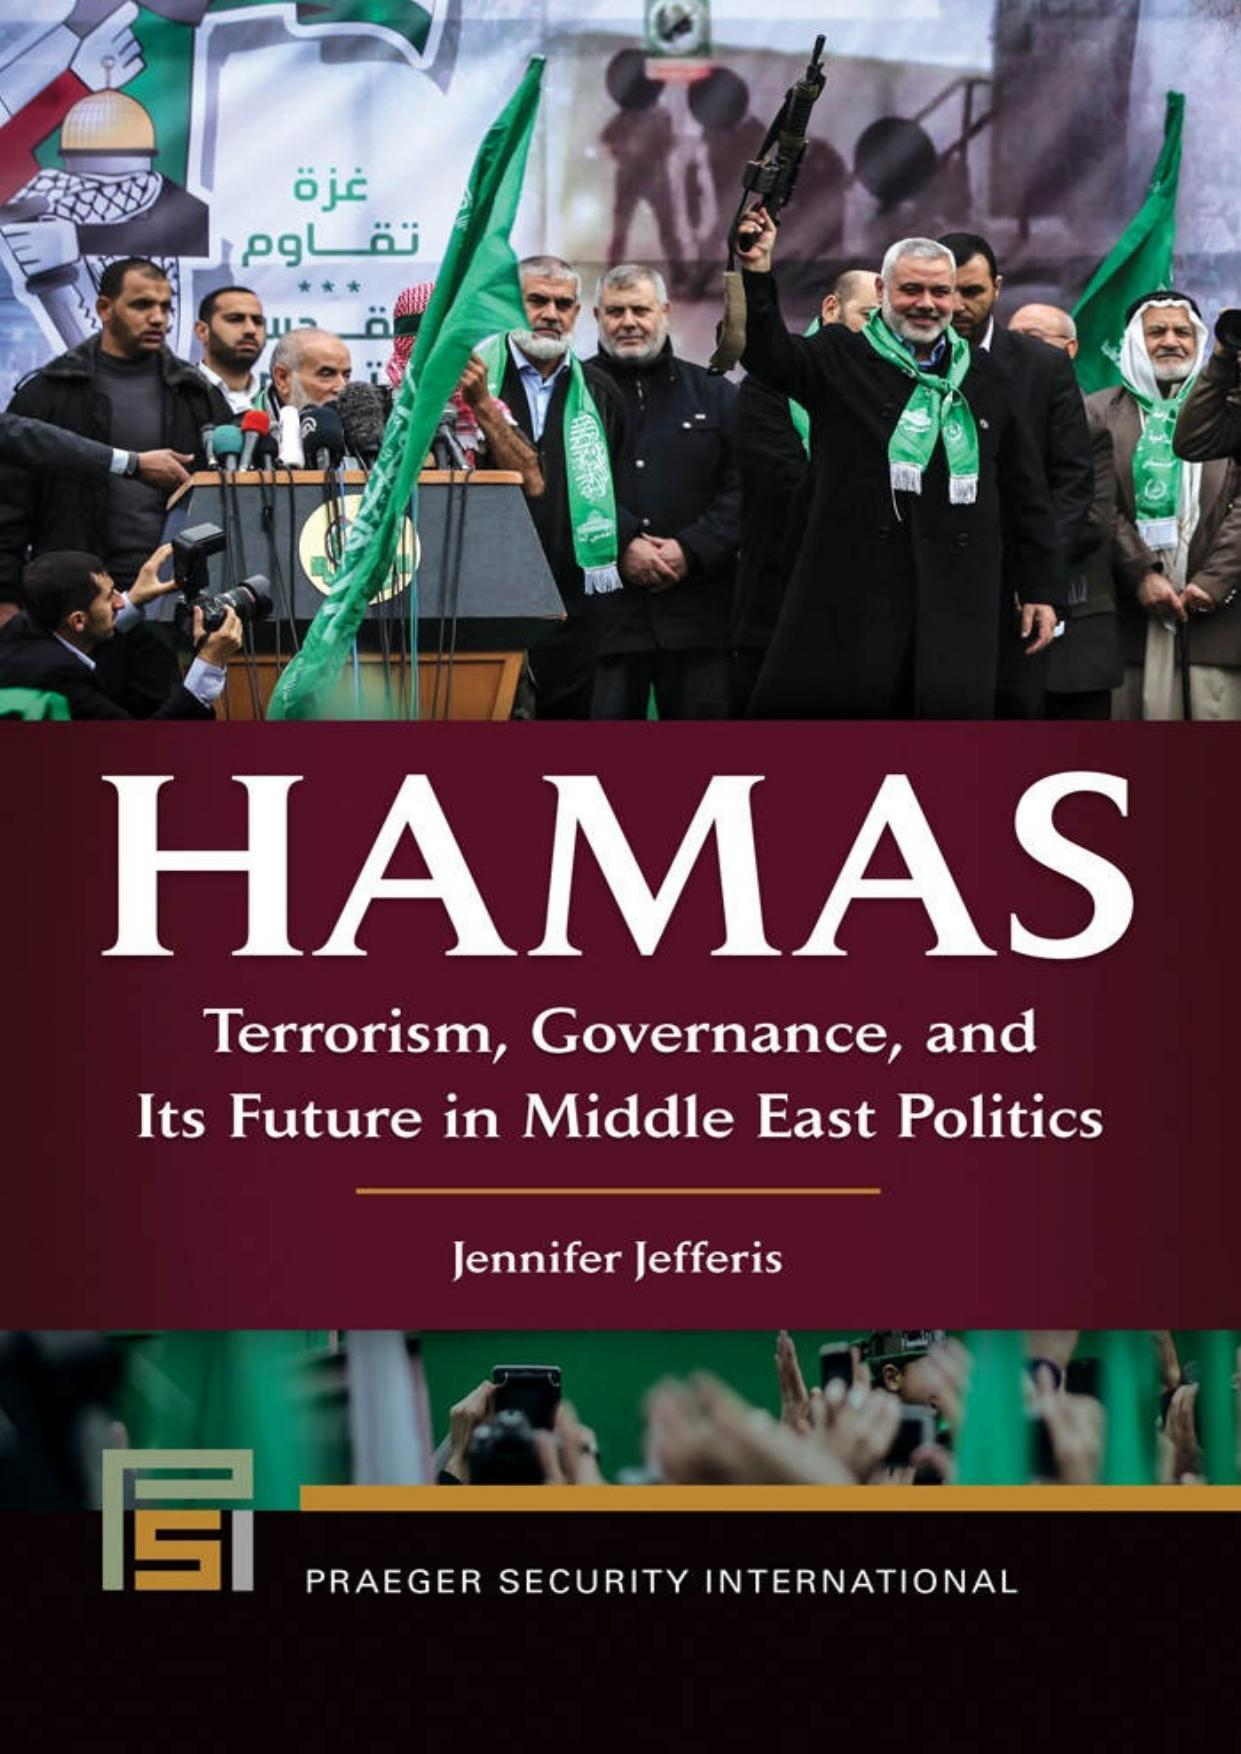 Hamas - Terrorism, Governance, and Its Future in Middle East Politics